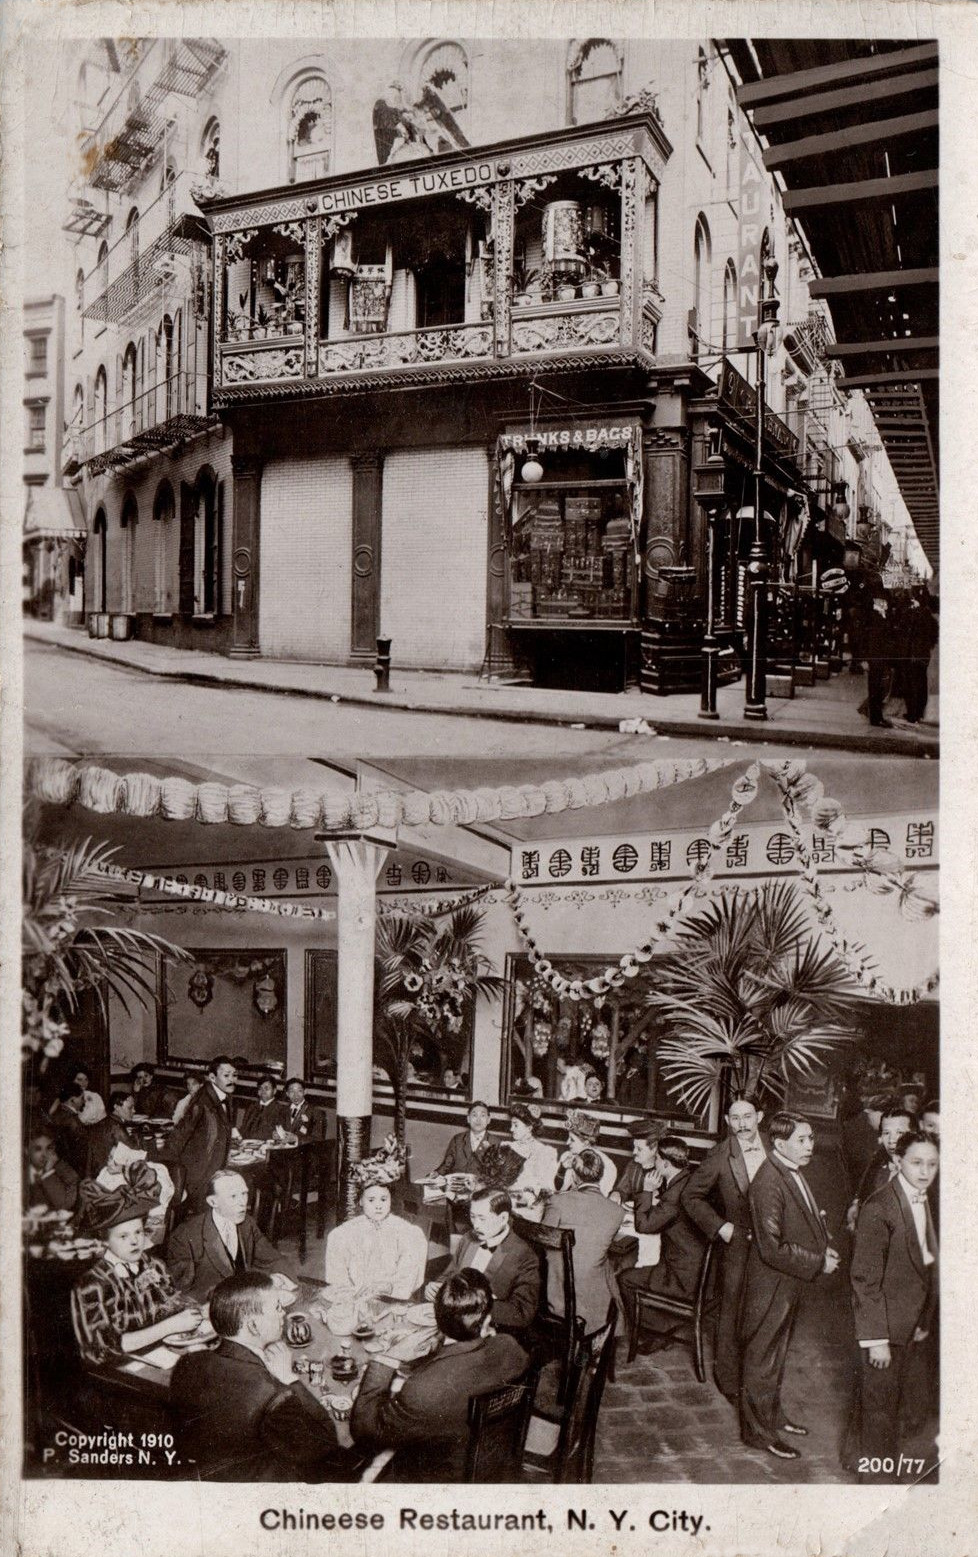 Old New York In Postcards #19 - Chinese Restaurants, A Brief History